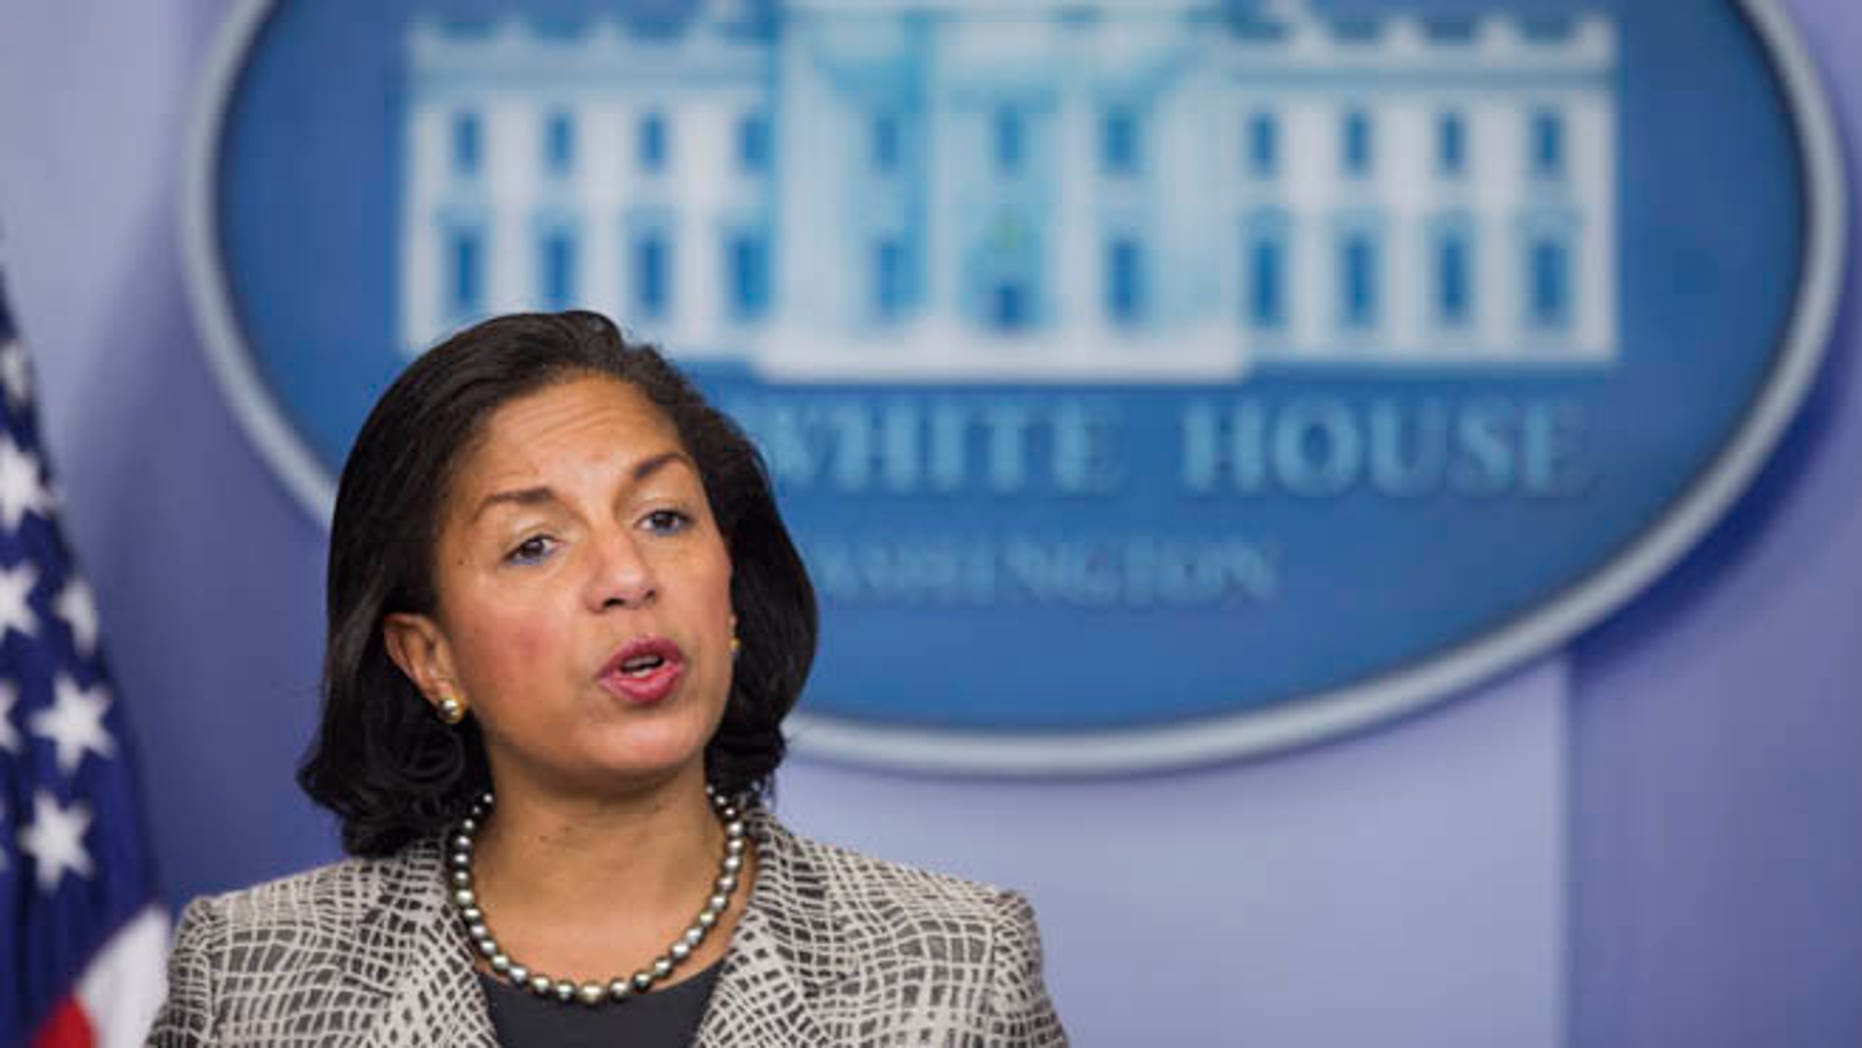 March 21, 2014: National Security Adviser Susan Rice speaks at the White House.